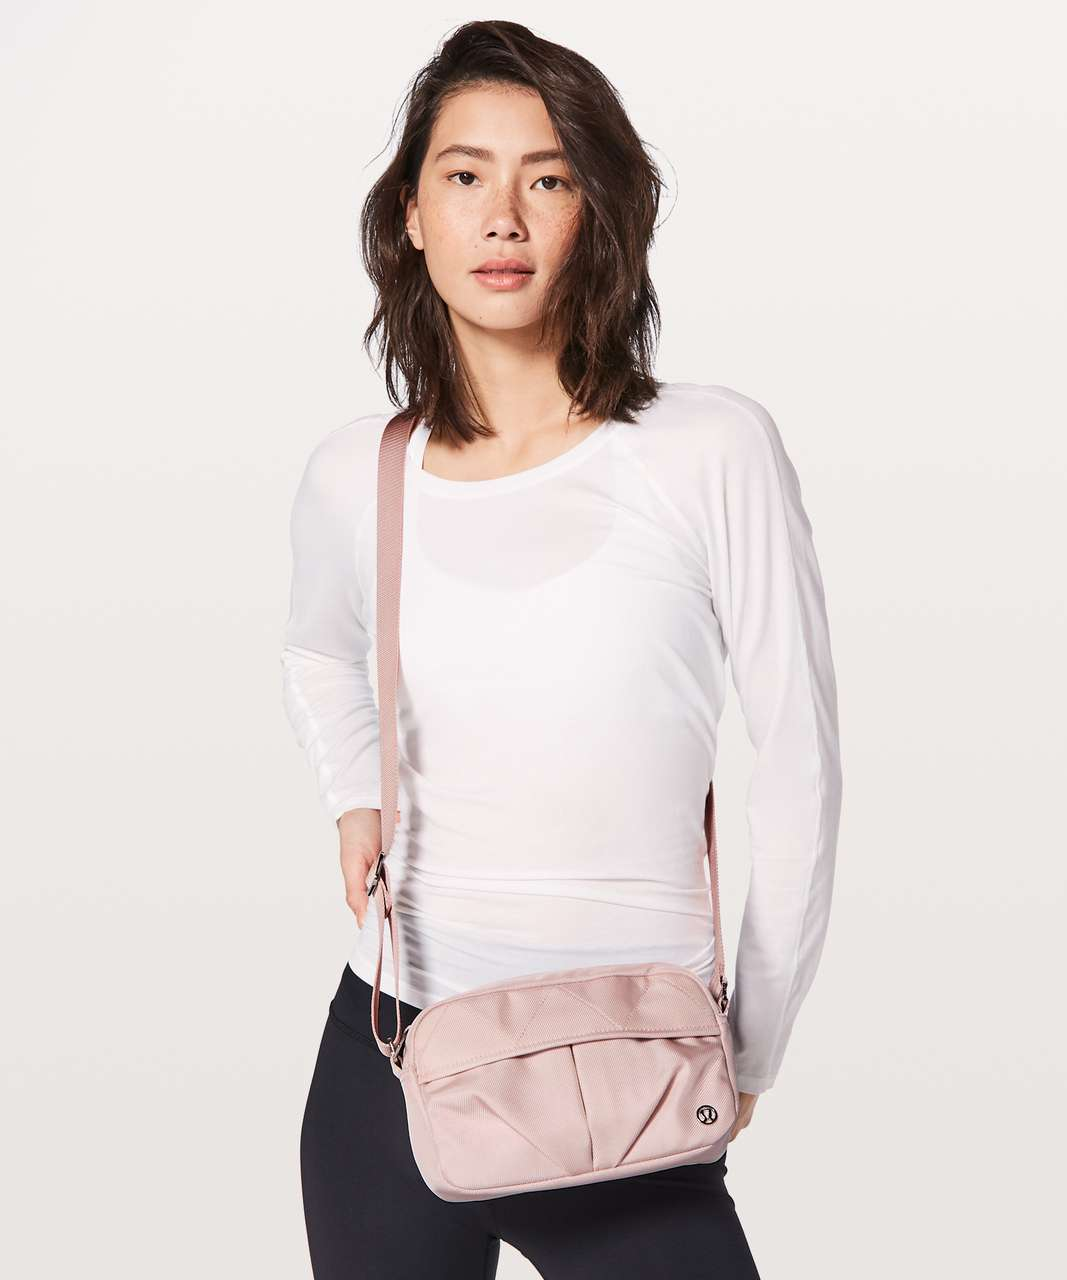 Lululemon City Adventurer Crossbody 3L - Misty Pink